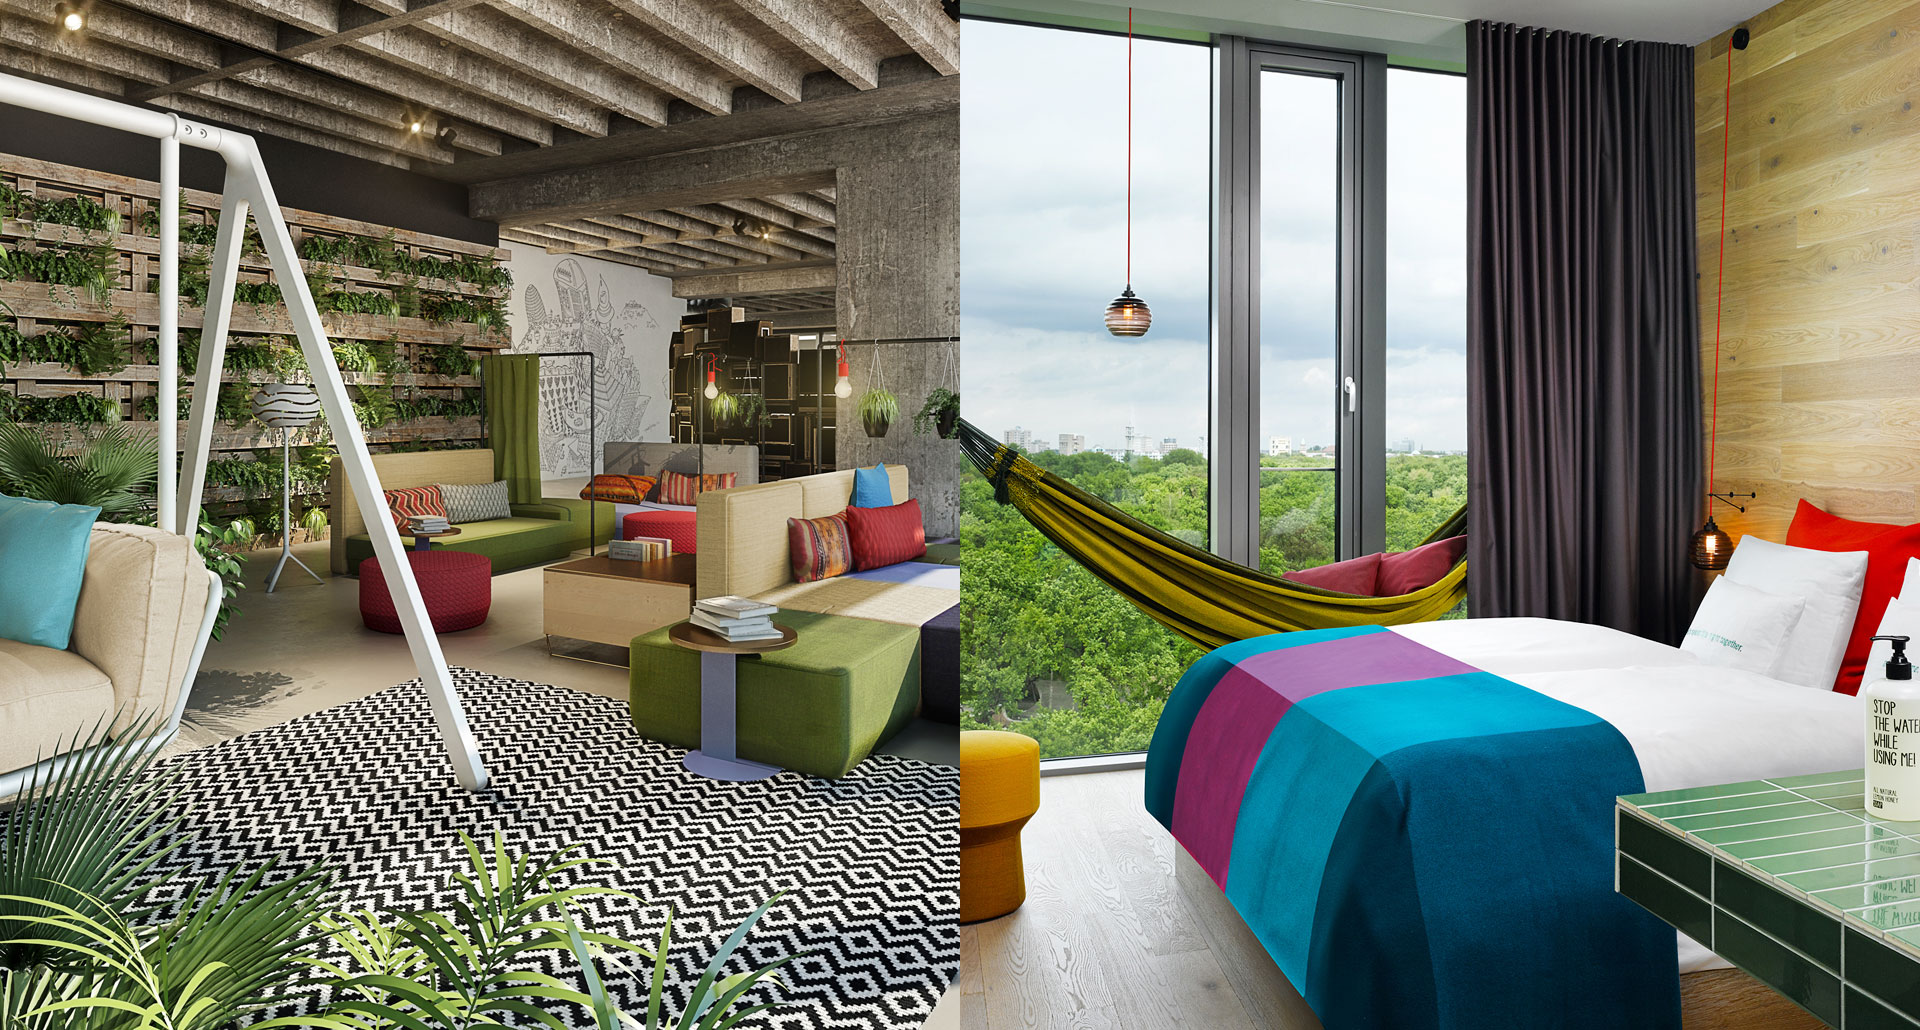 Tablet boutique hotel awards best design hotels europe for Design hotel awards